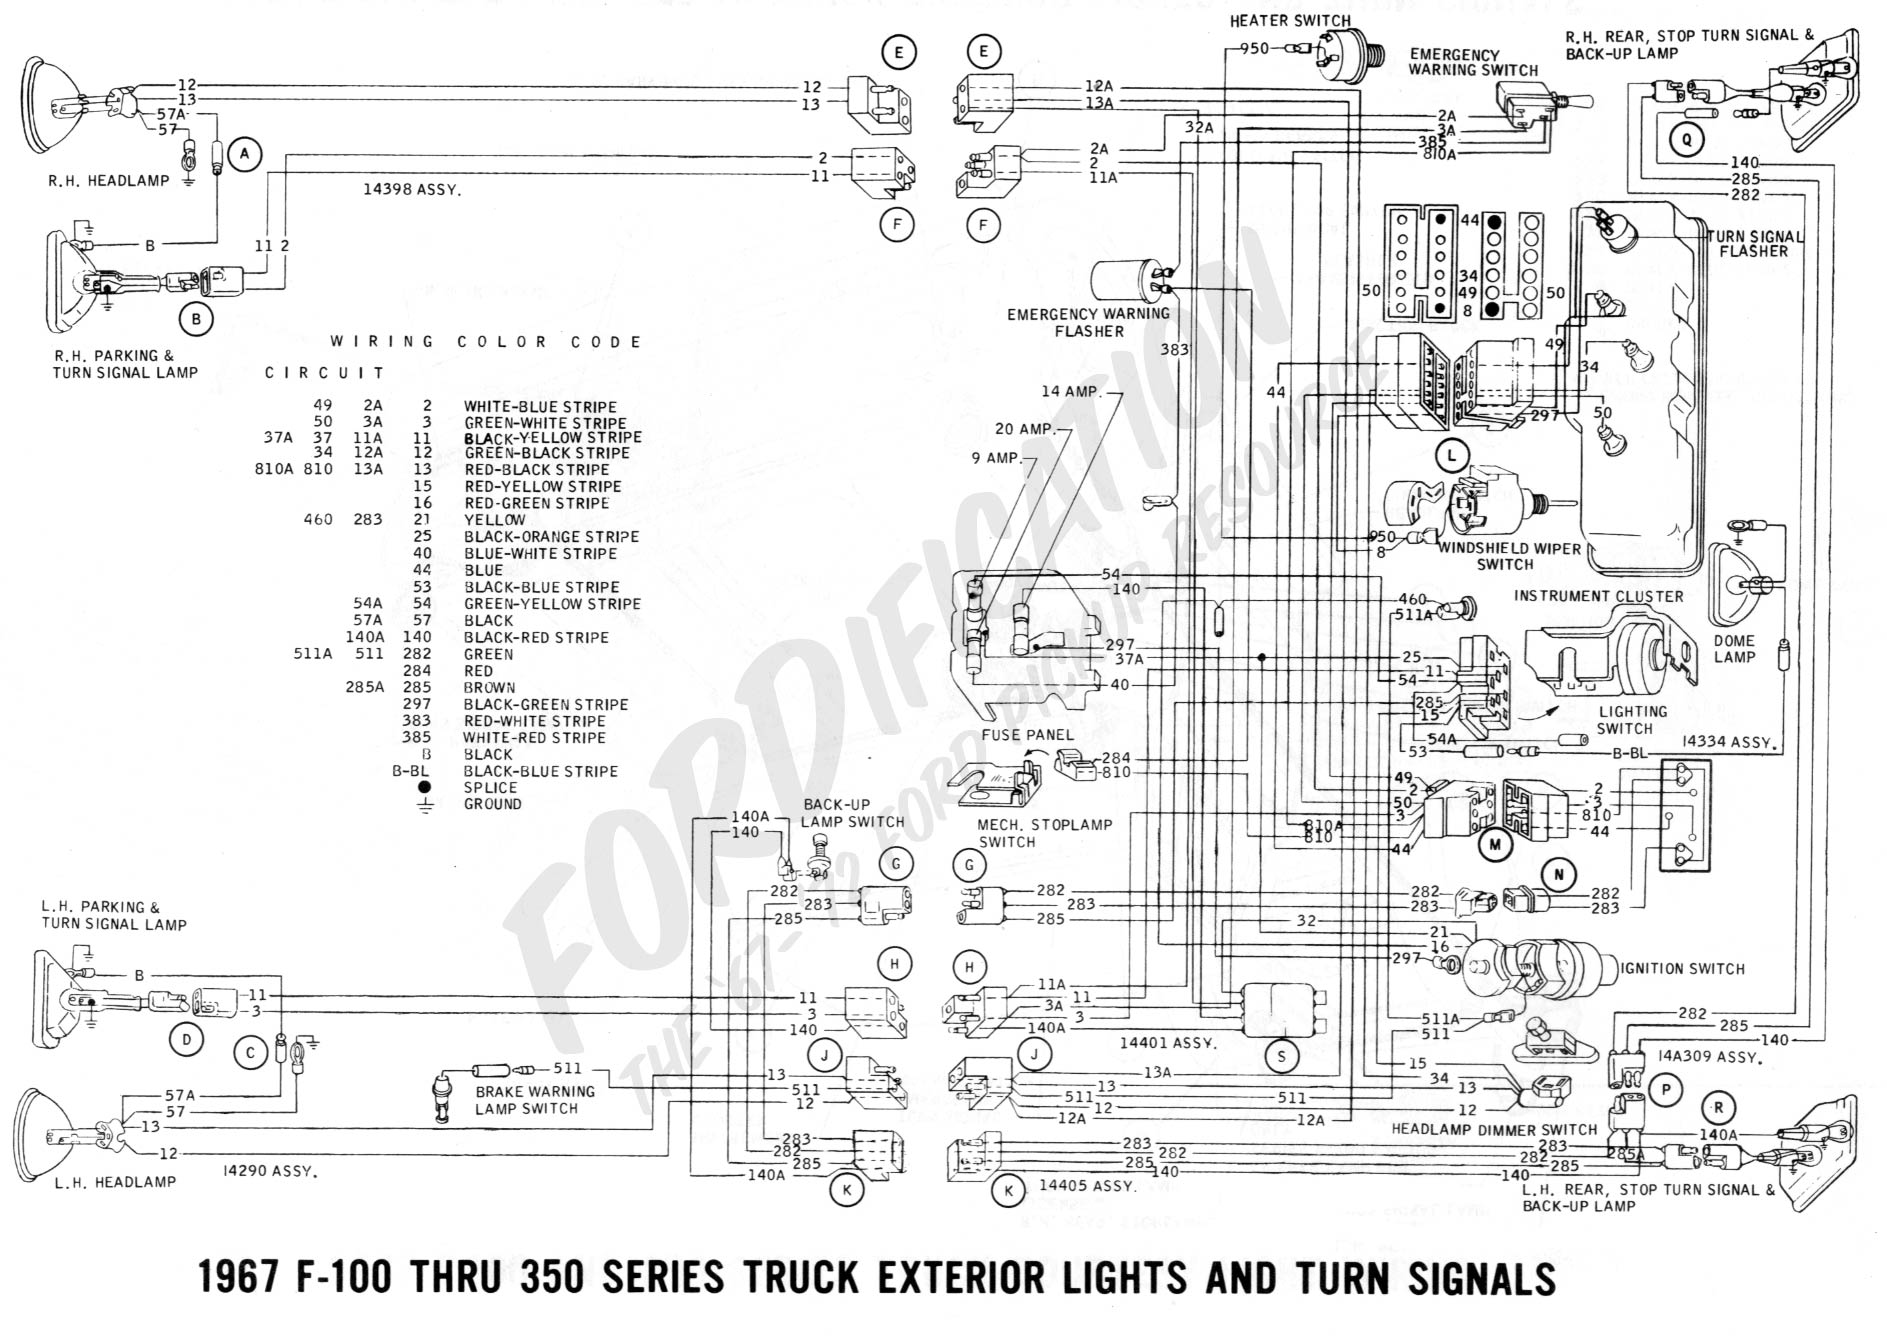 67 Mustang Fog Light Wiring Schematic. . Wiring Diagram